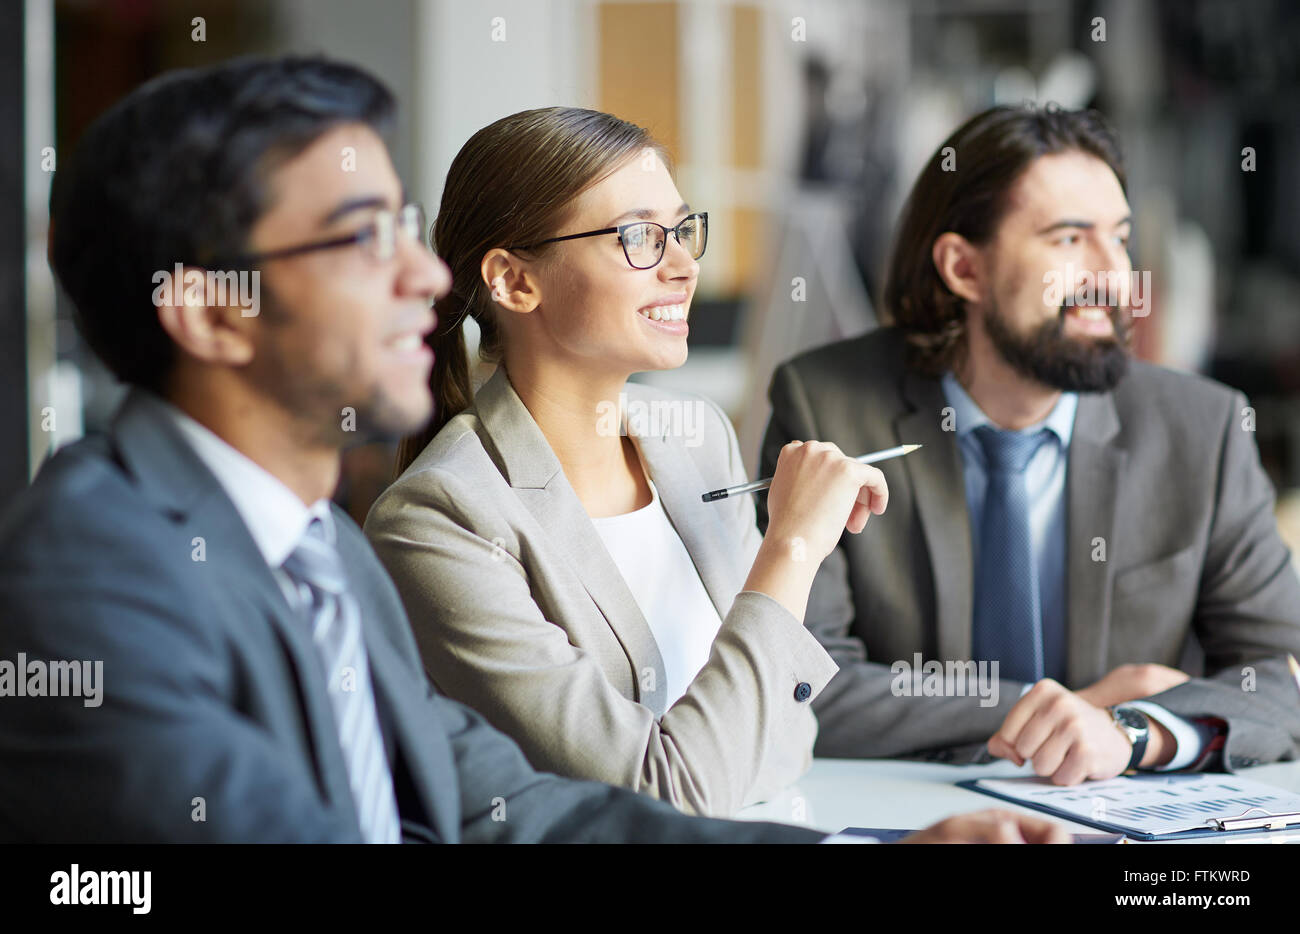 Sitting at seminar - Stock Image